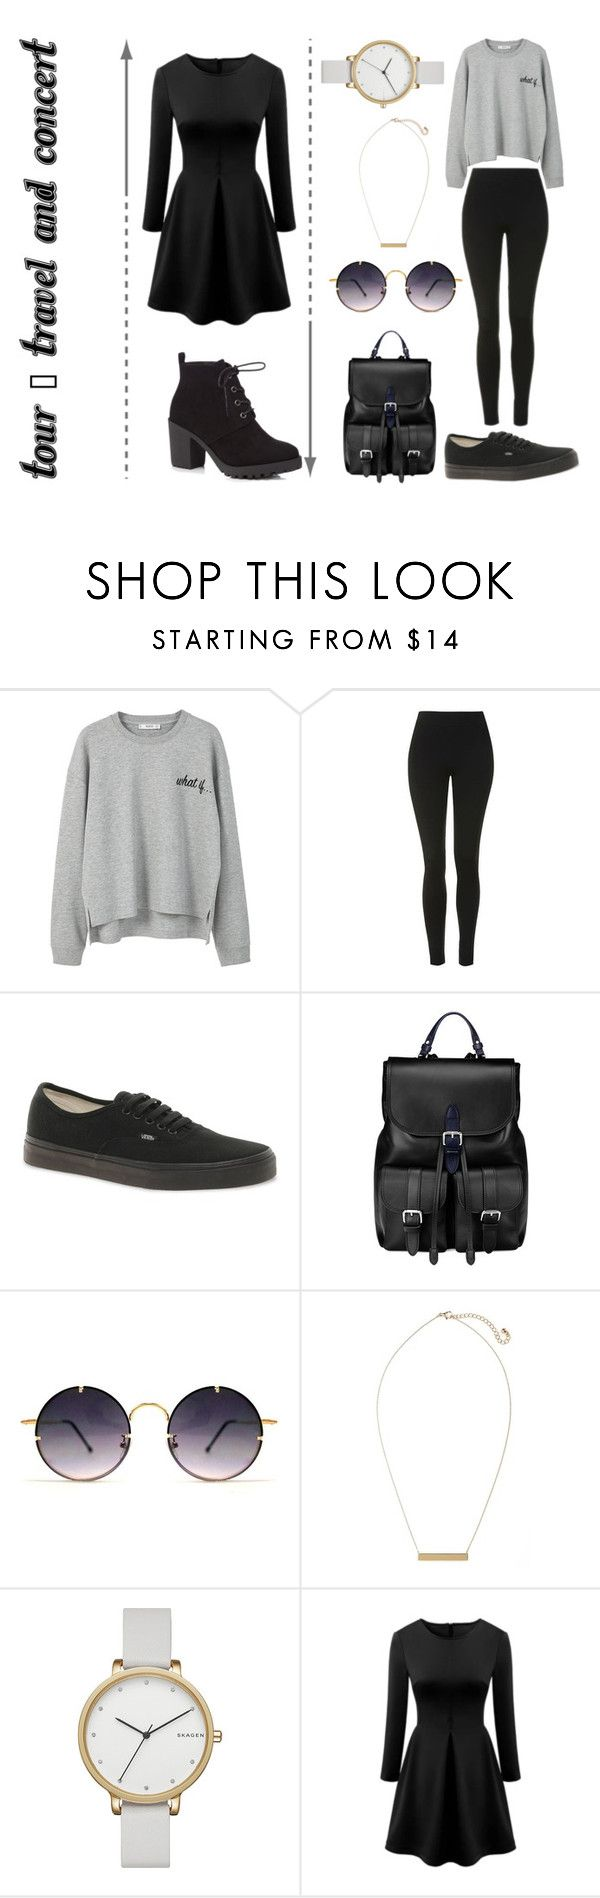 """""""TOUR - travel and concert"""" by lilyrose2000 on Polyvore featuring MANGO, Topshop, Vans, Aspinal of London, Spitfire, BP., Skagen, WithChic and Red Herring"""